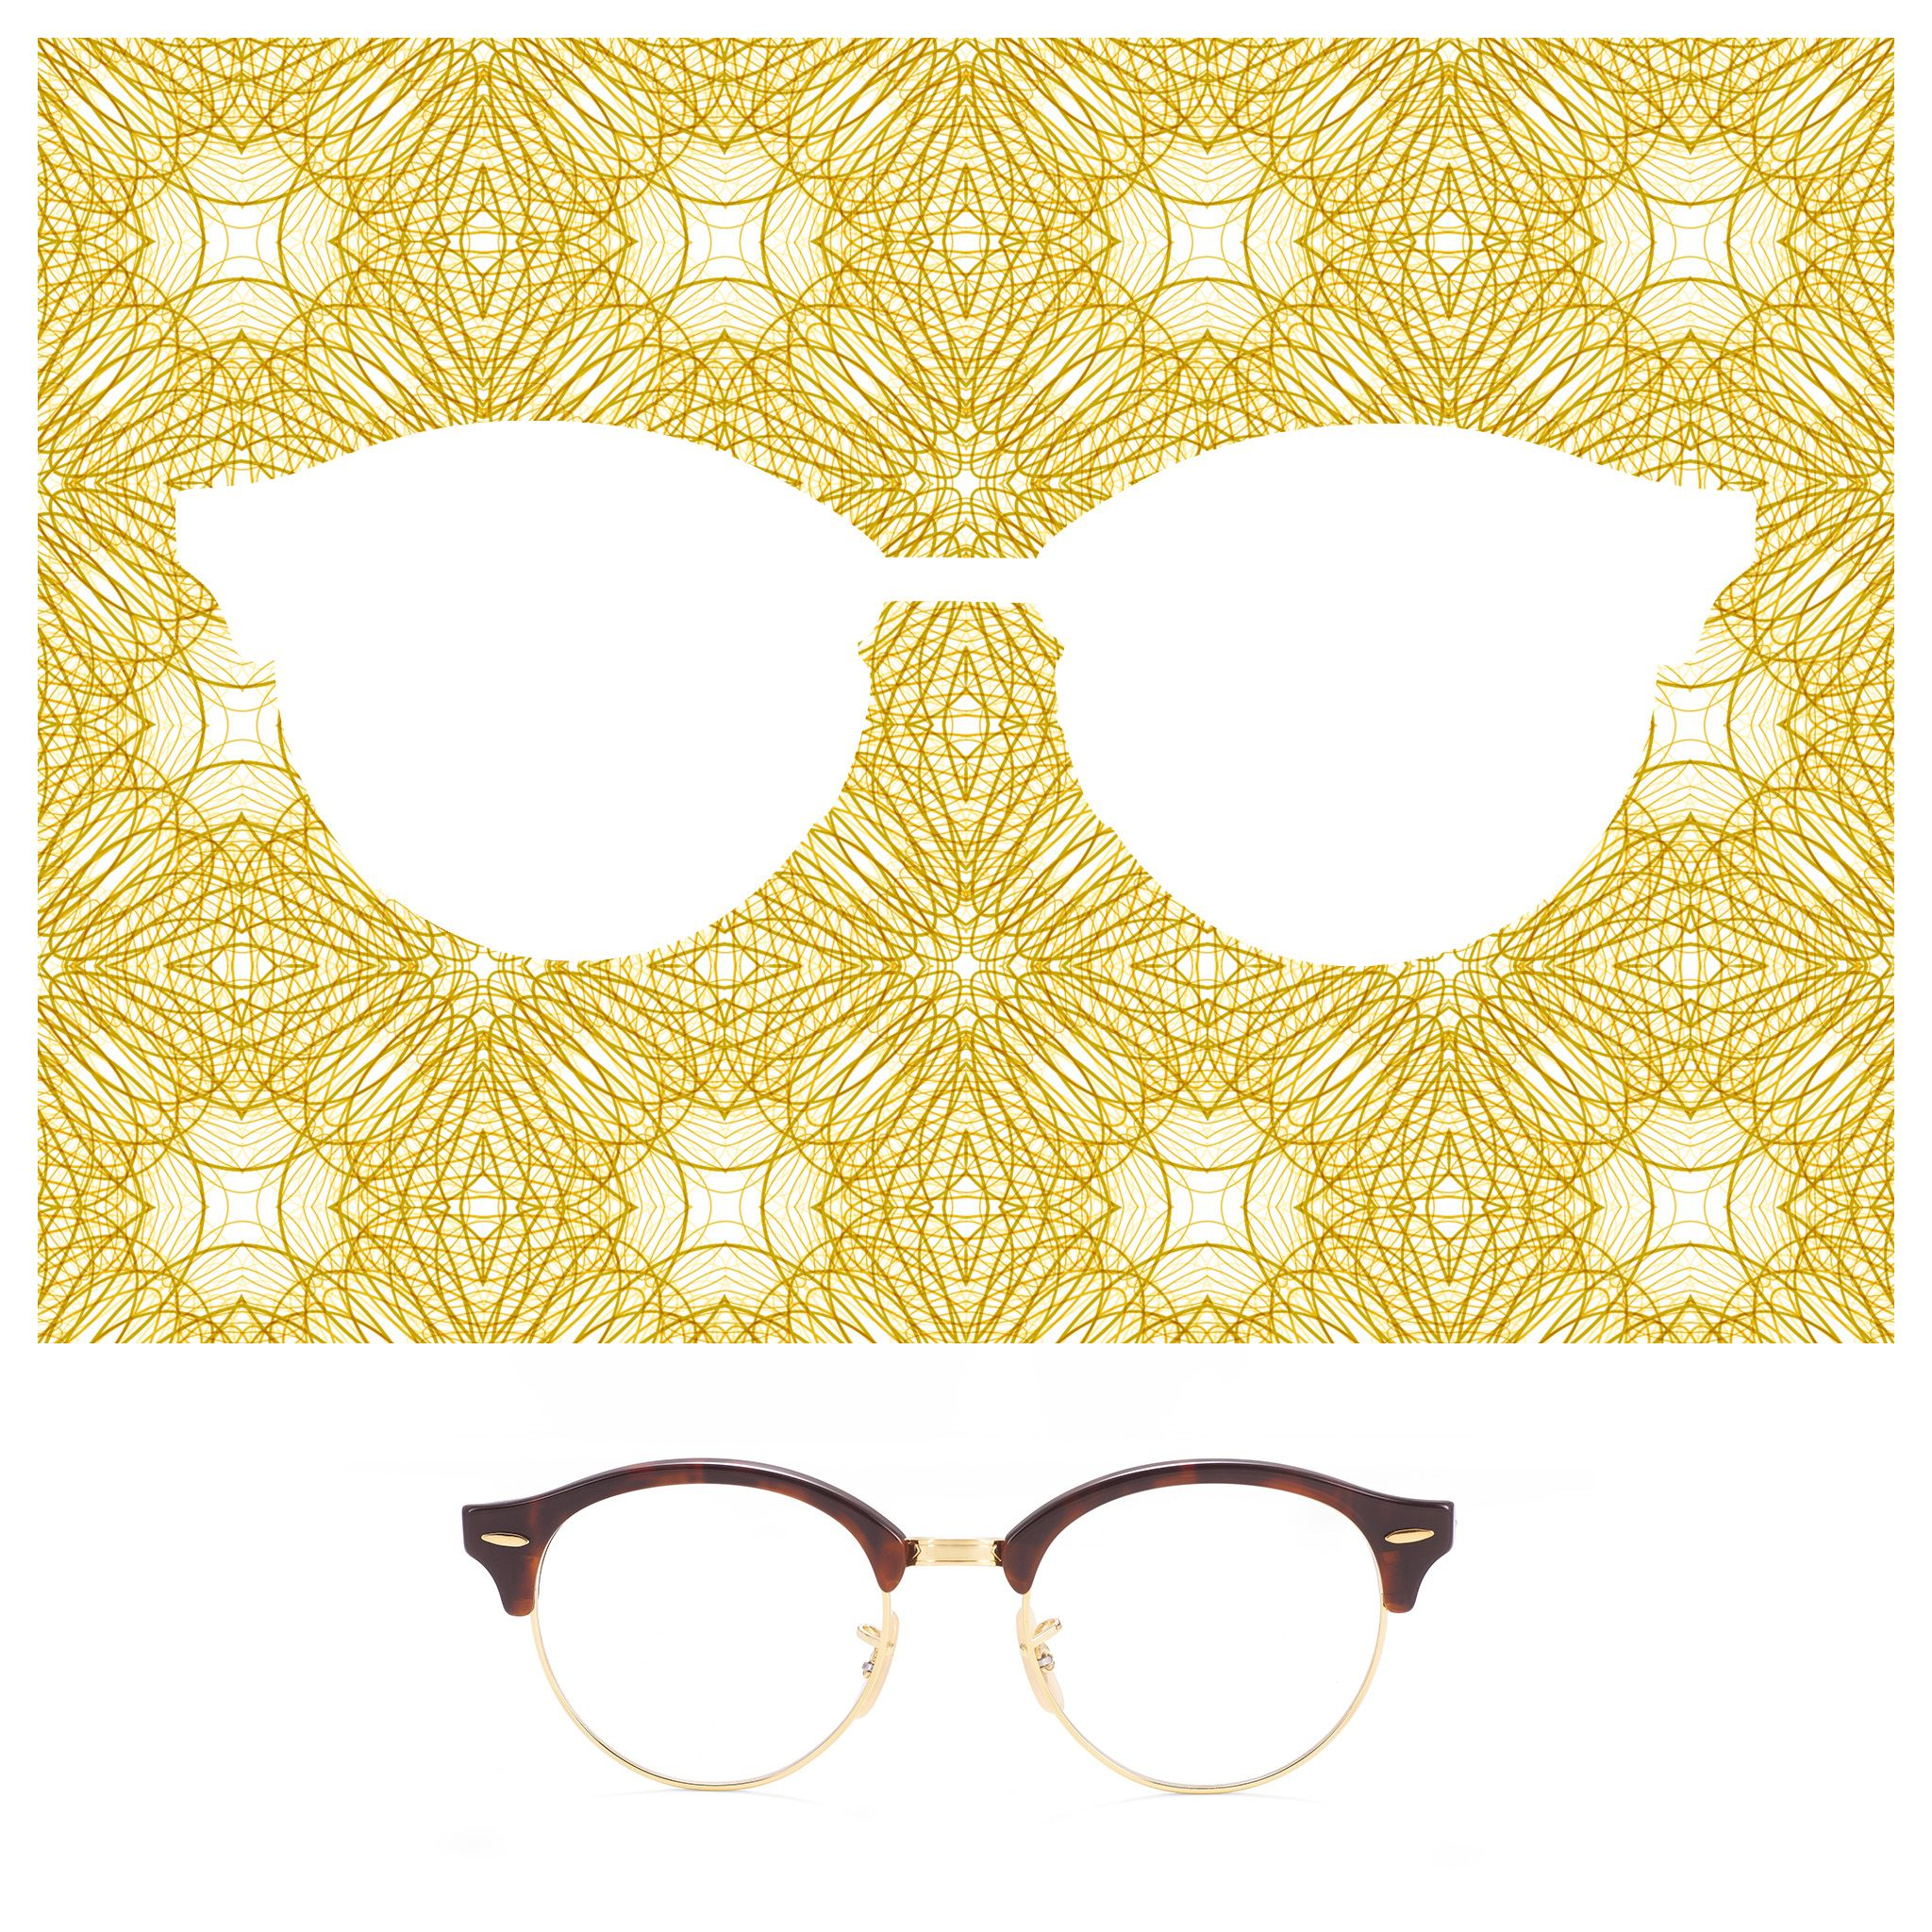 Ray ban sunglasses new design - Spec Crush Fall For These New Ray Ban Clubround Dreamboats And Their